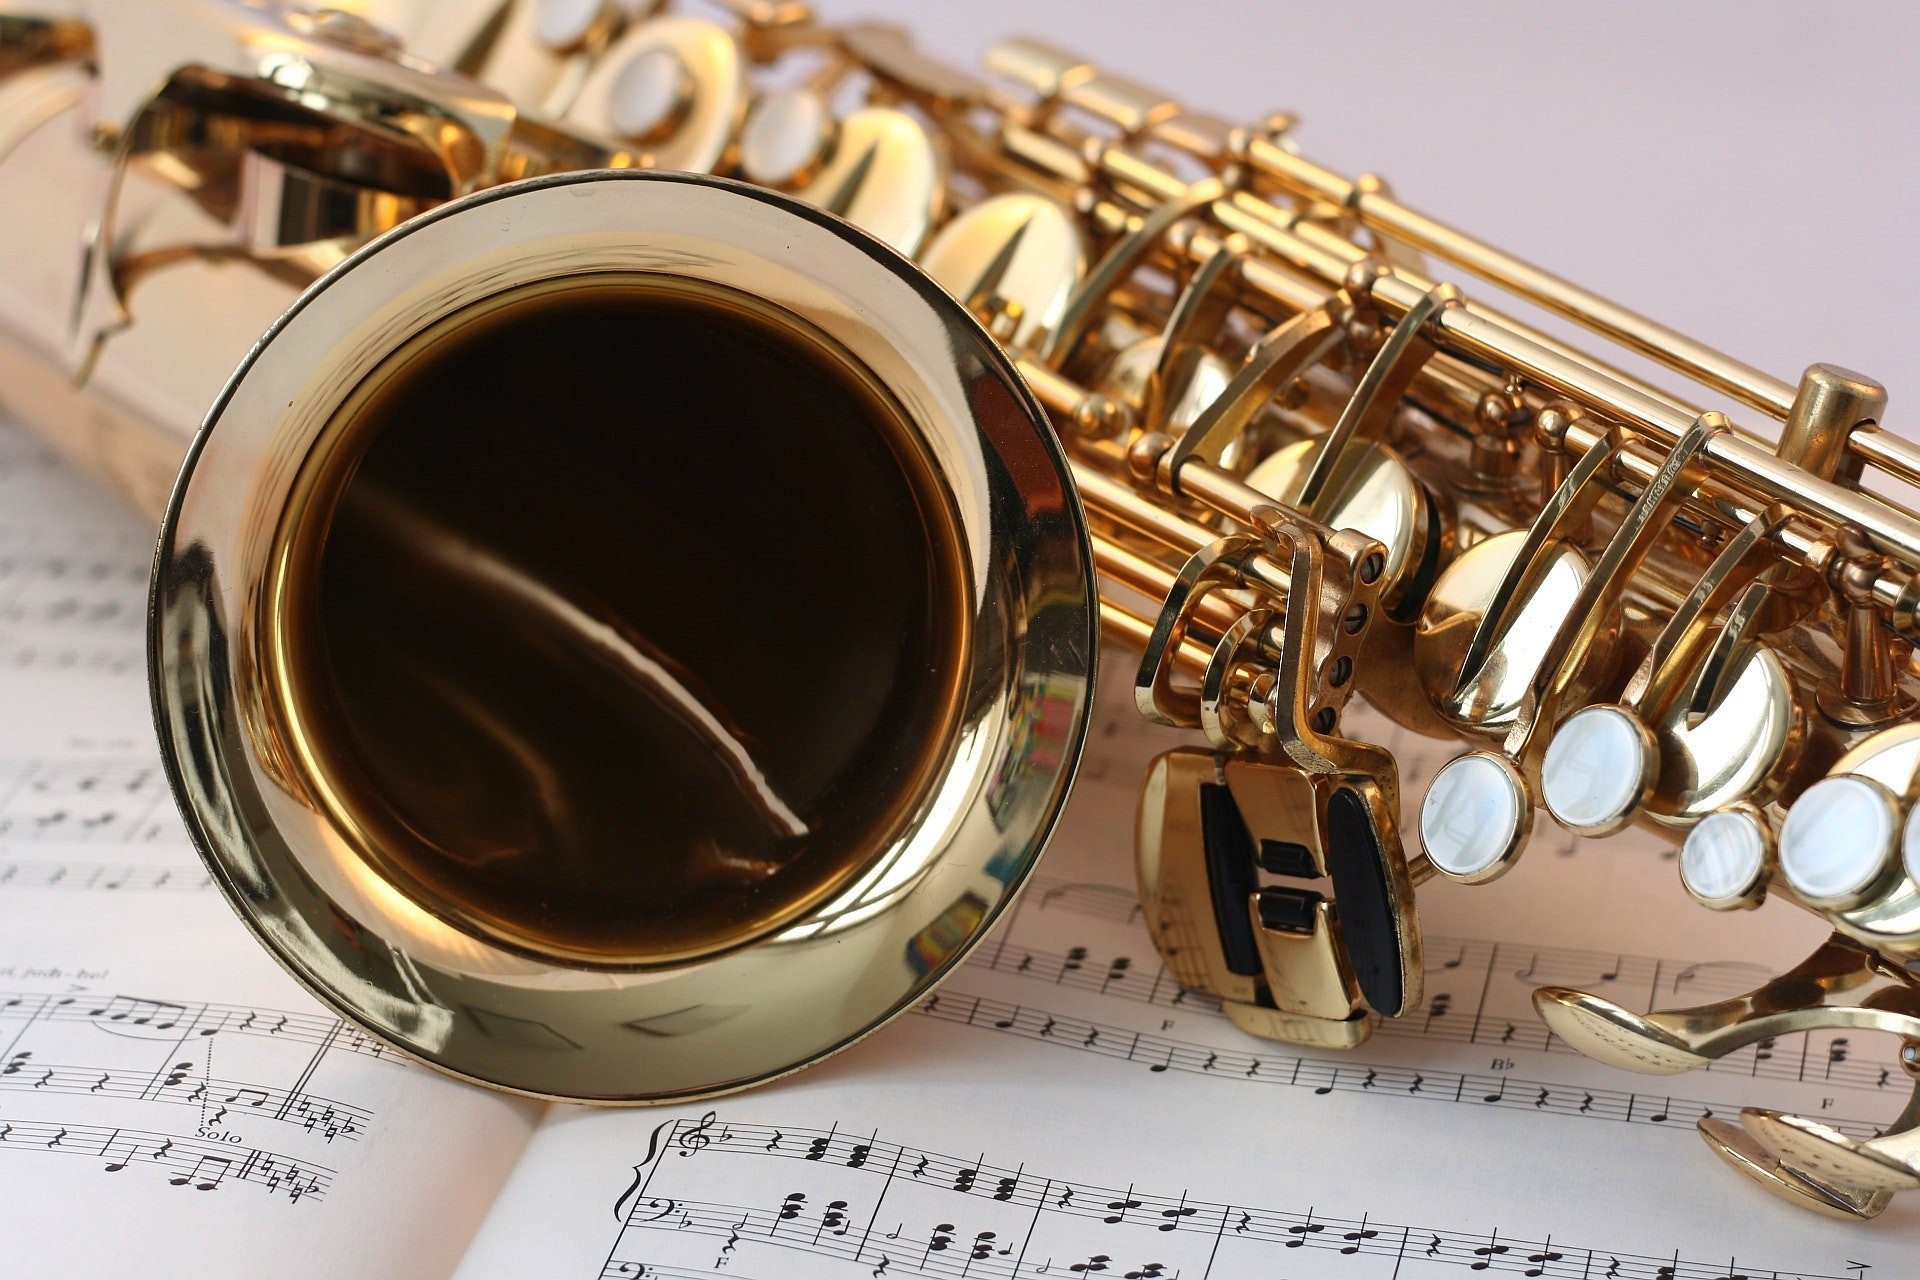 brass-classic-classical-music-close-up-4